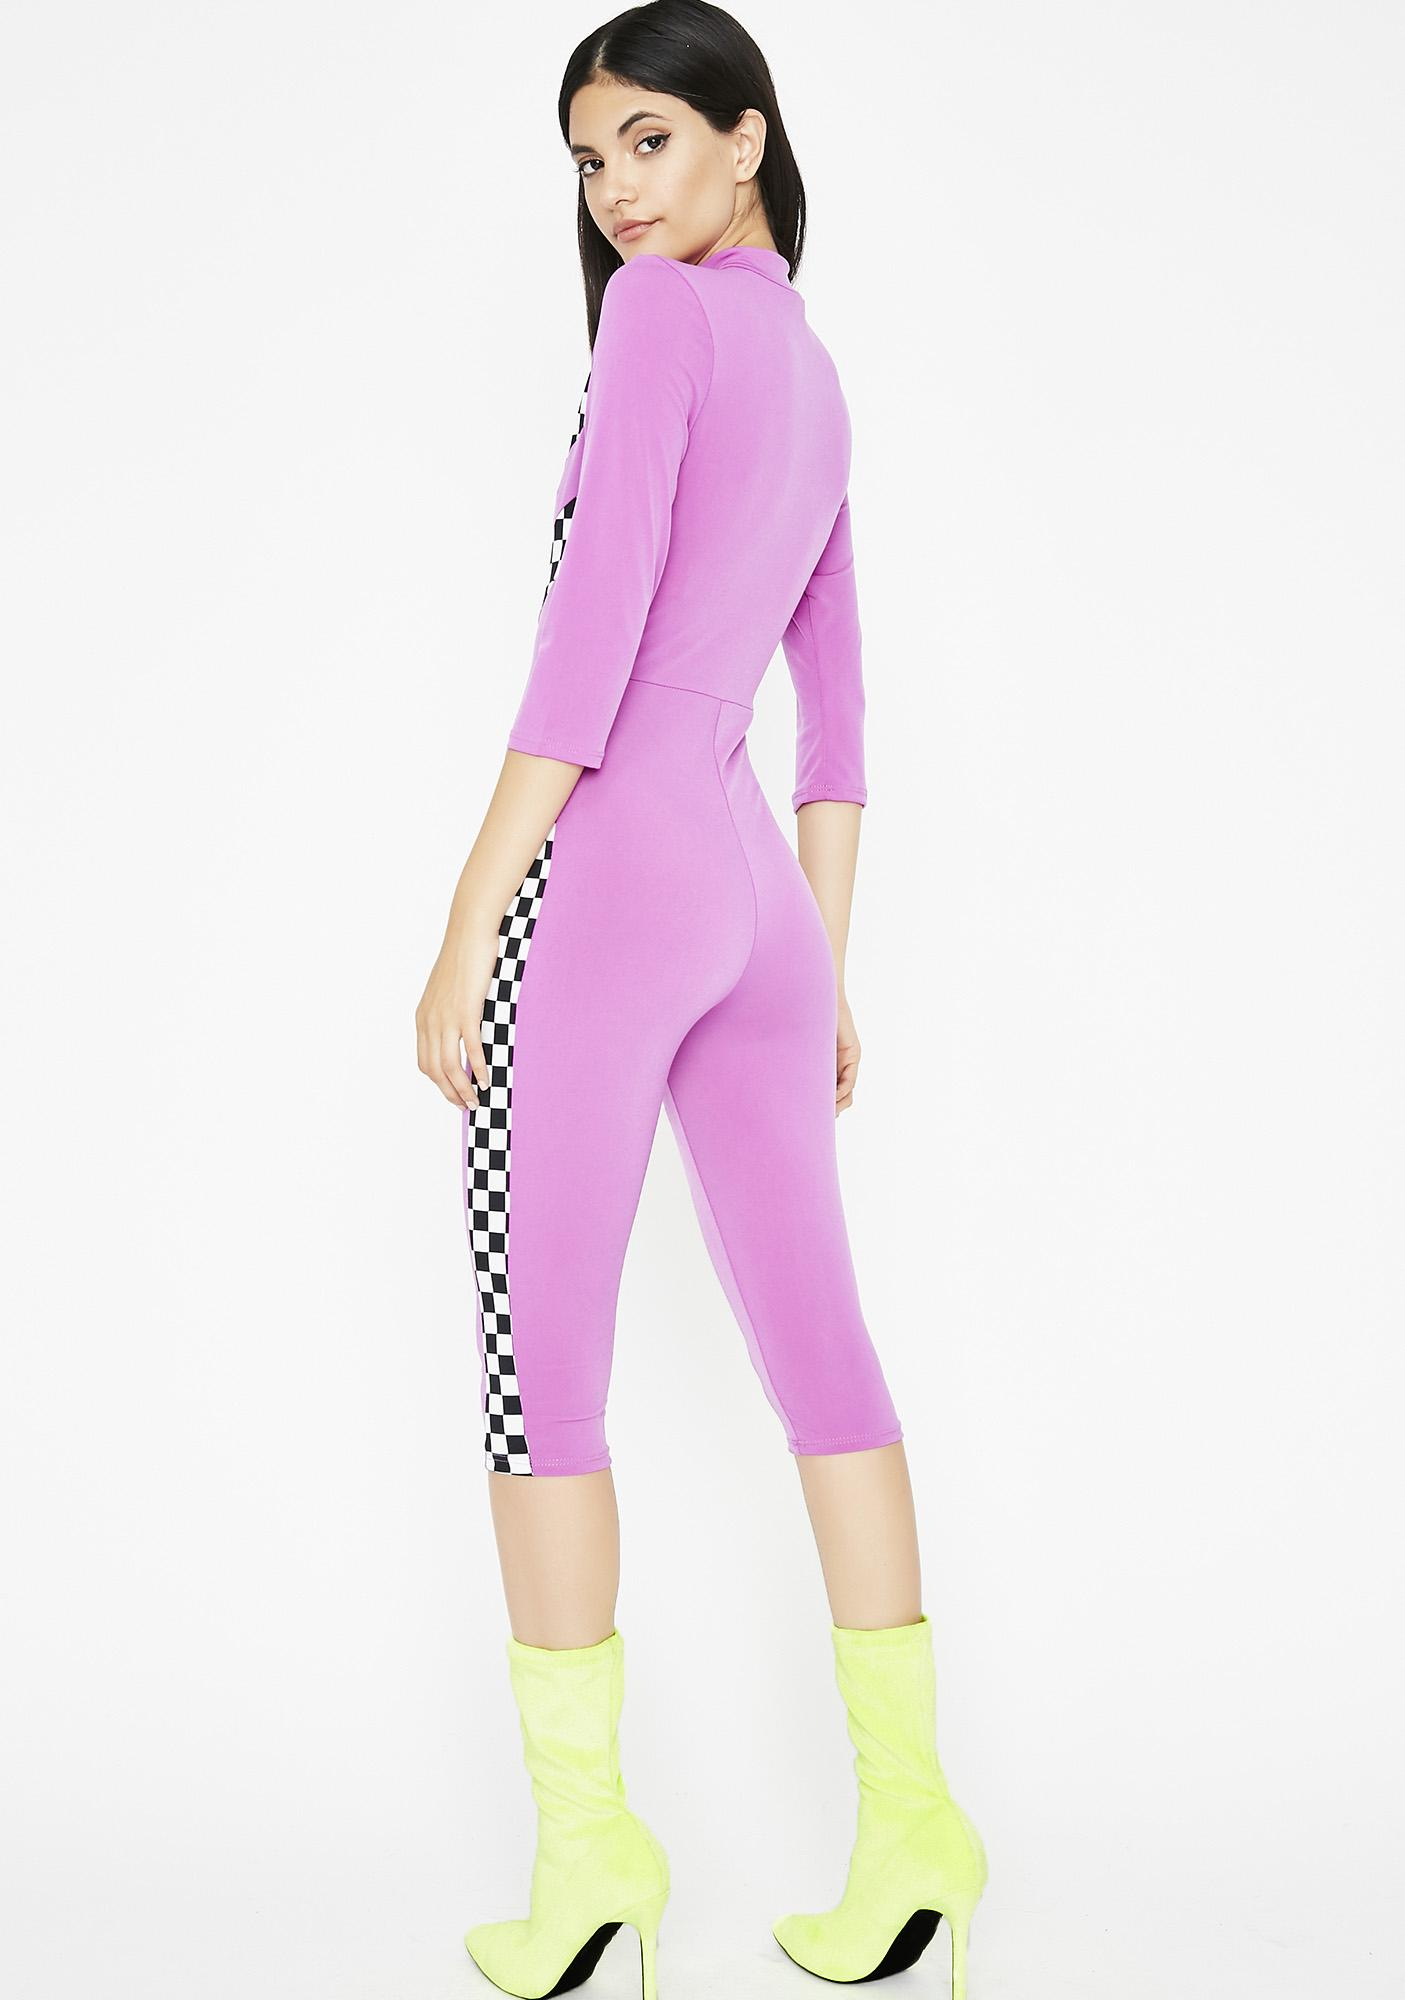 Finish First Place Racer Catsuit